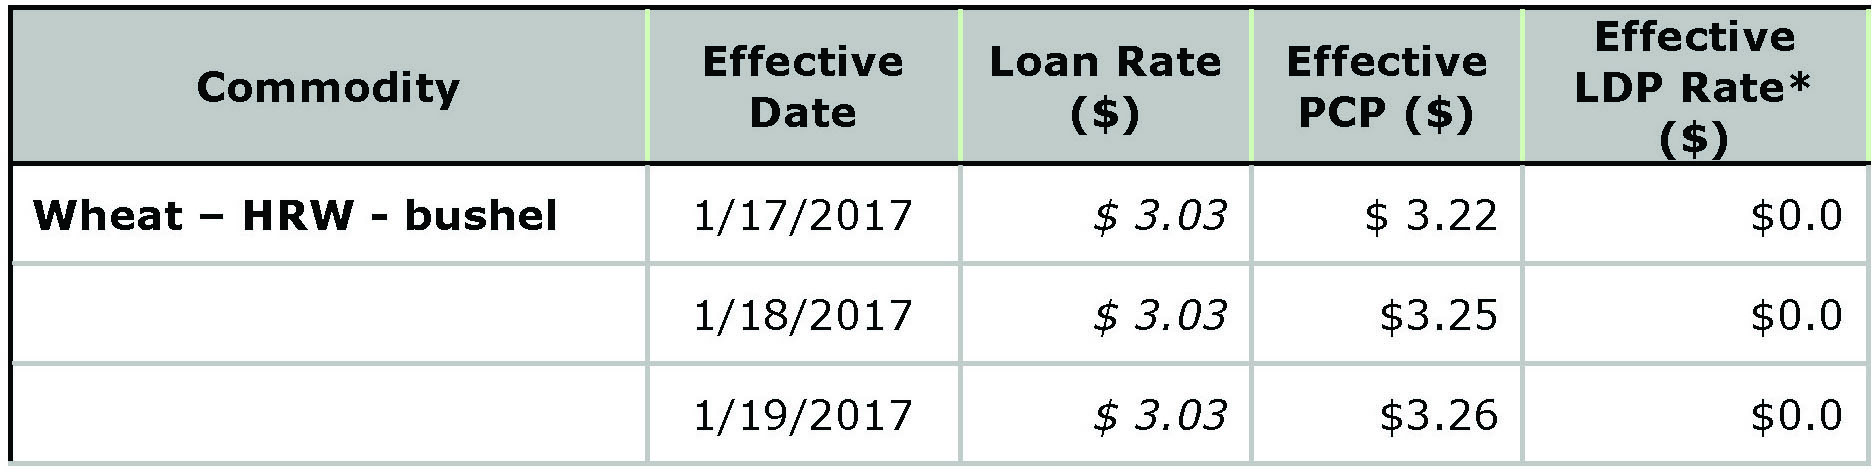 USDA Loan Deficiency Payment - January 20, 2017